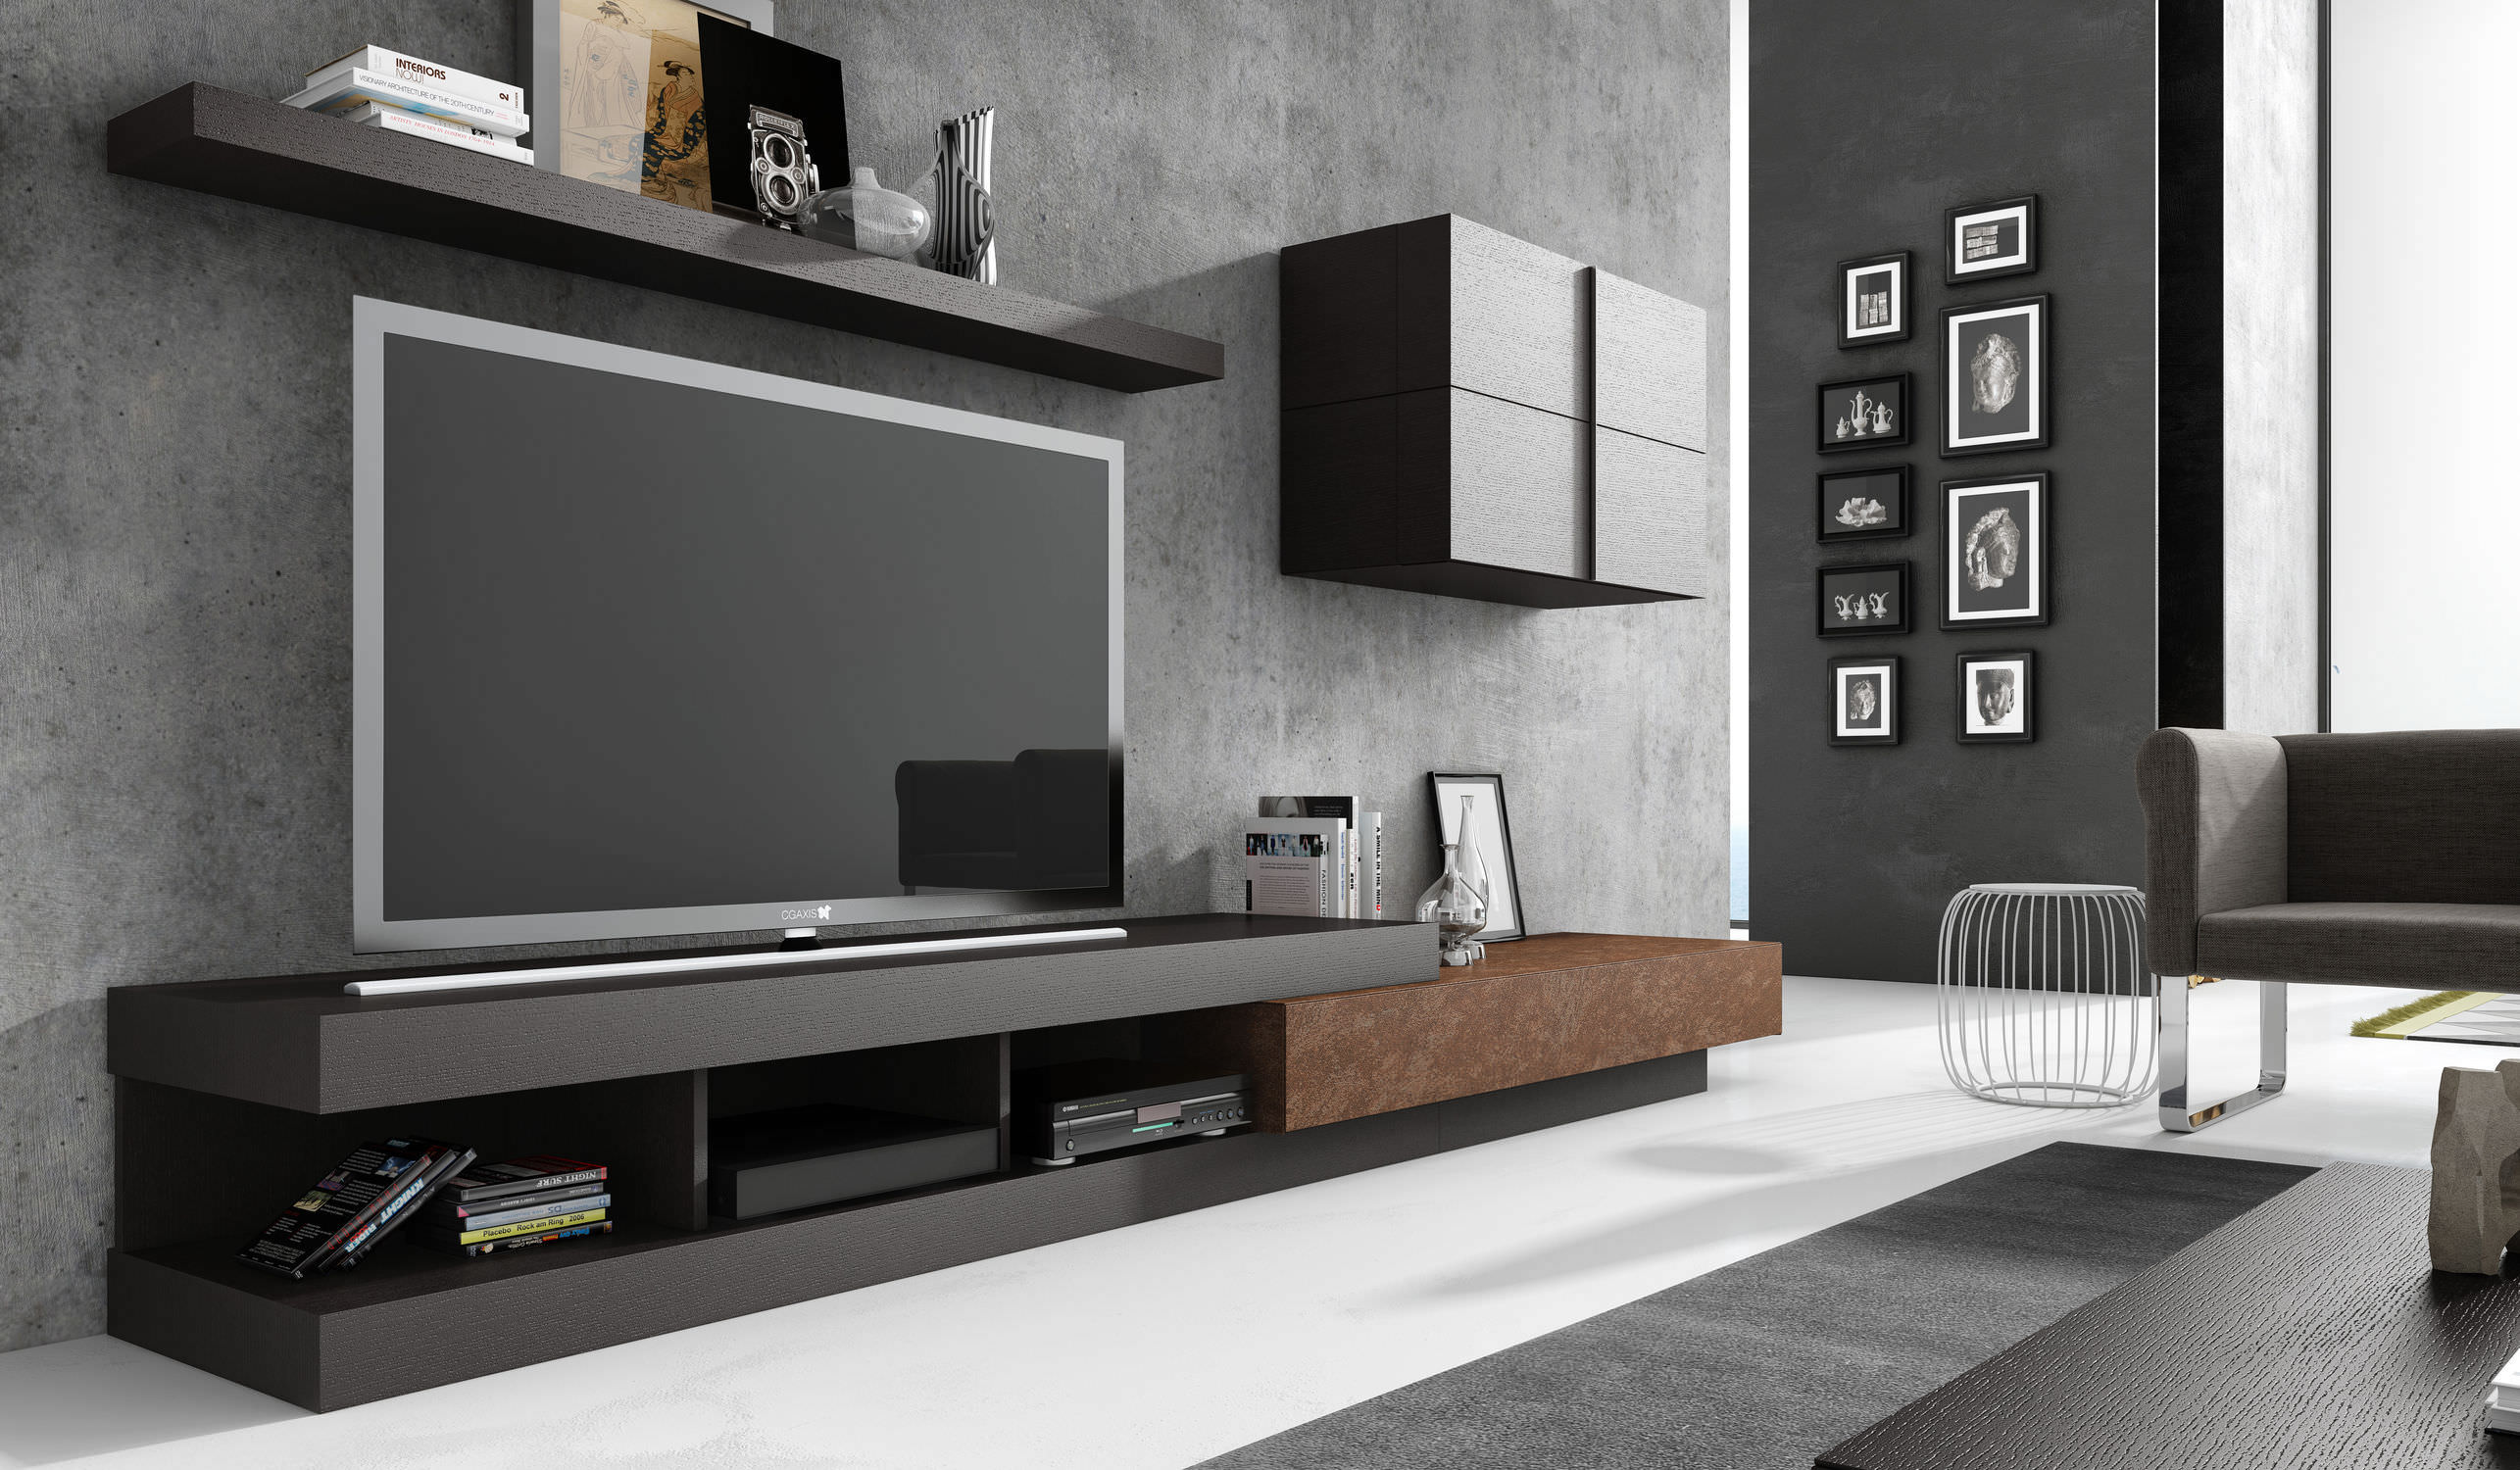 Meuble tv contemporain design id es de d coration - Meuble tv contemporain design ...